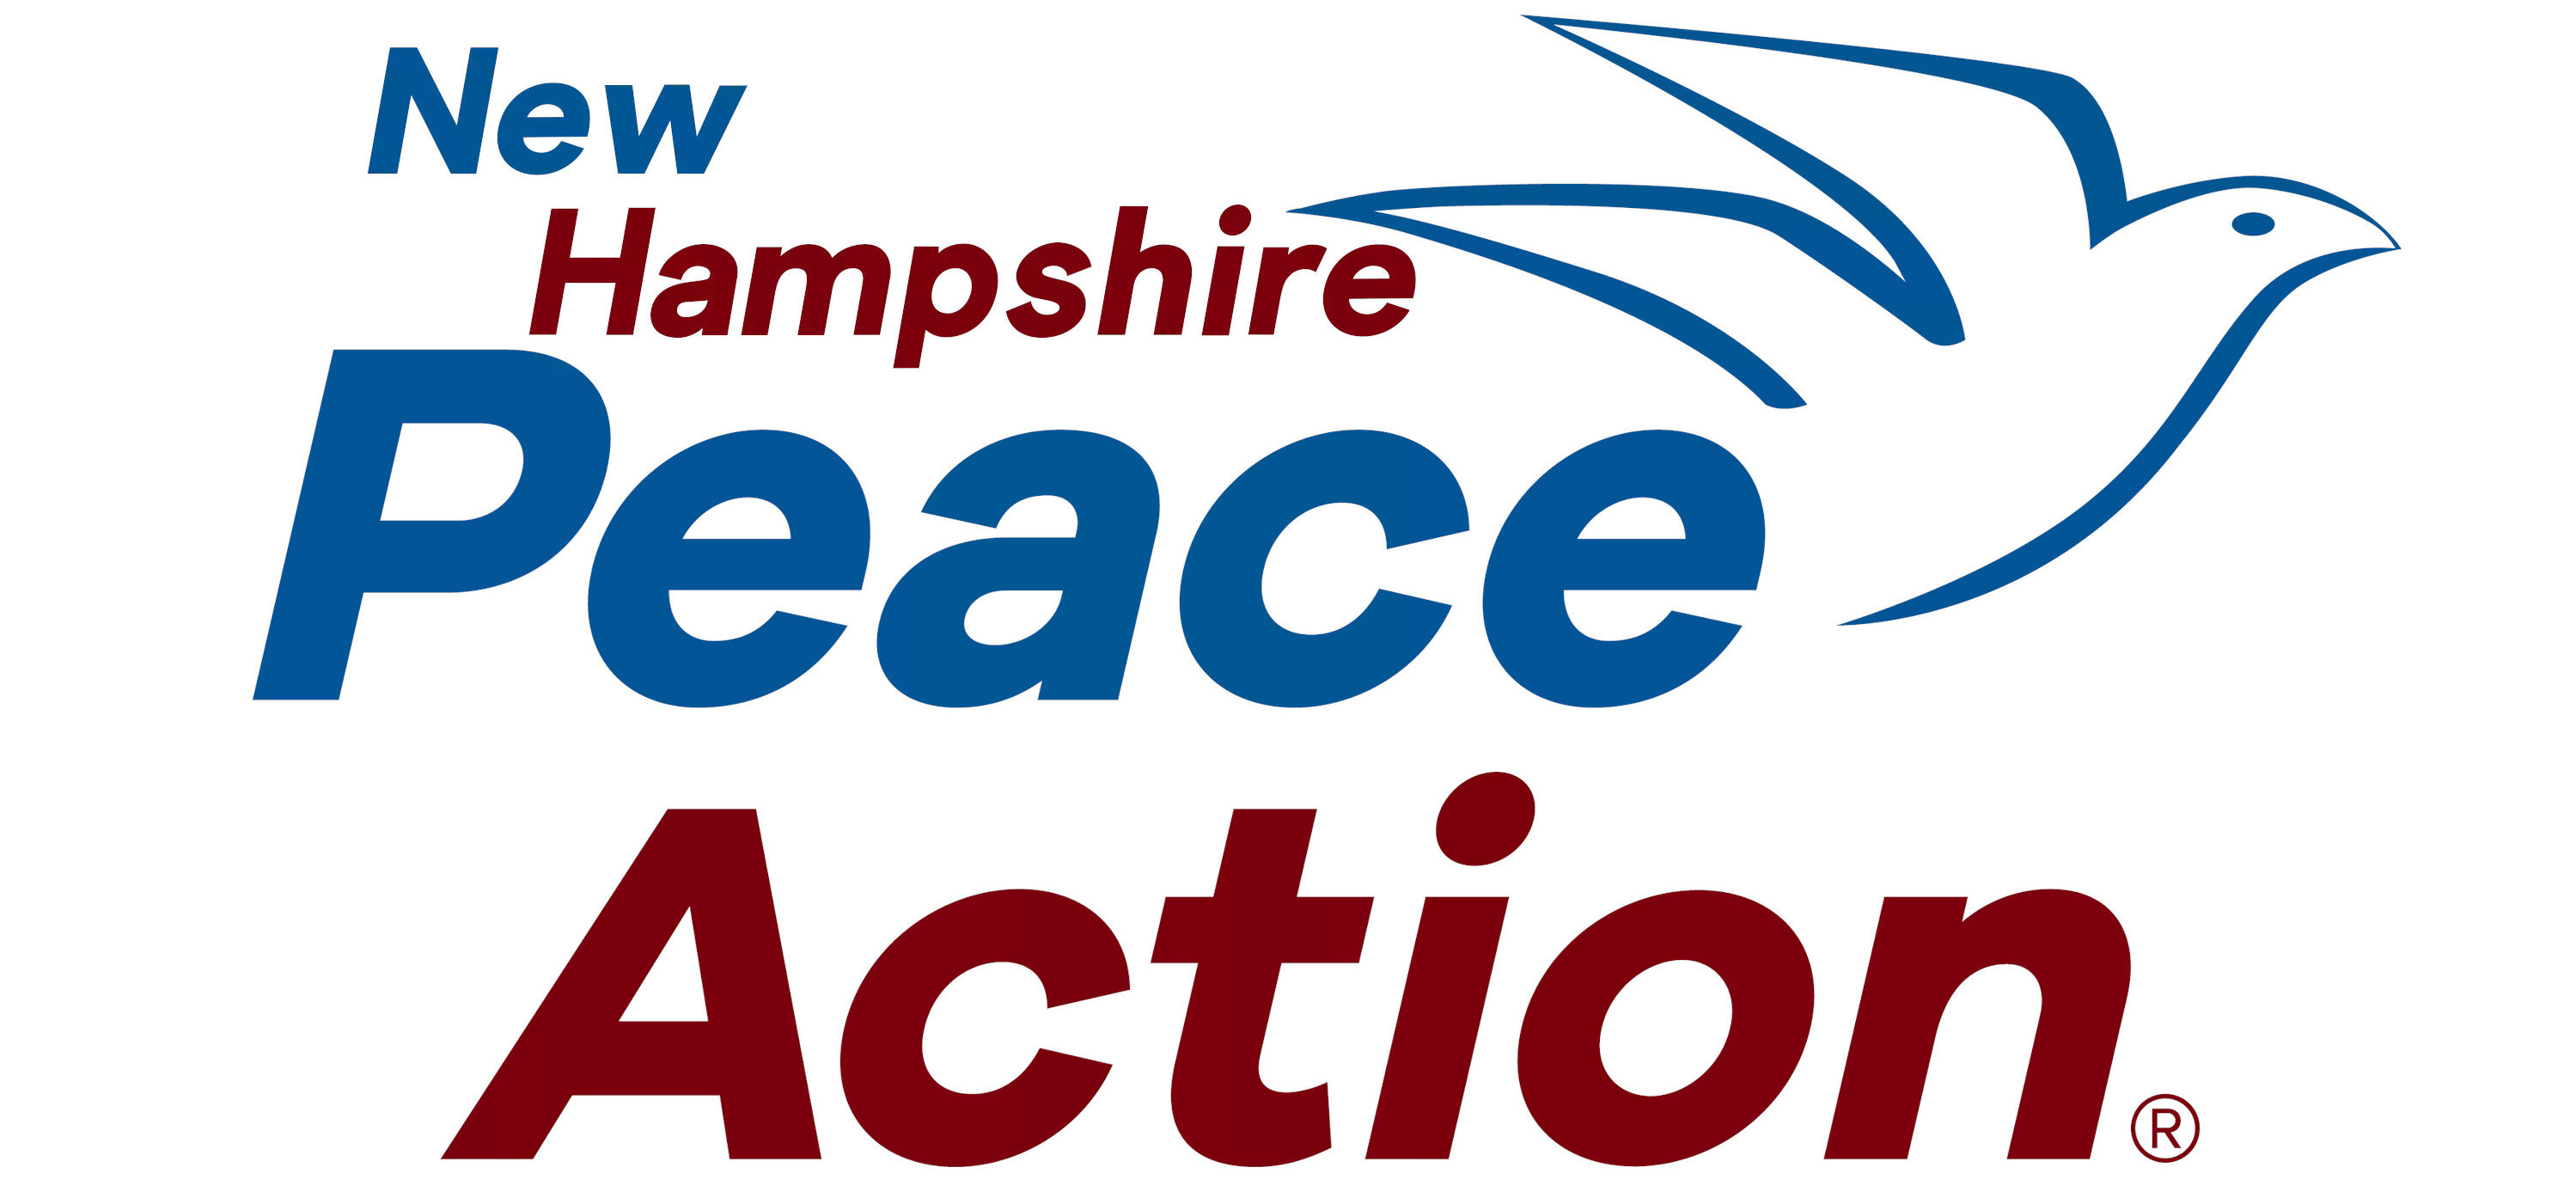 New Hampshire Peace Action